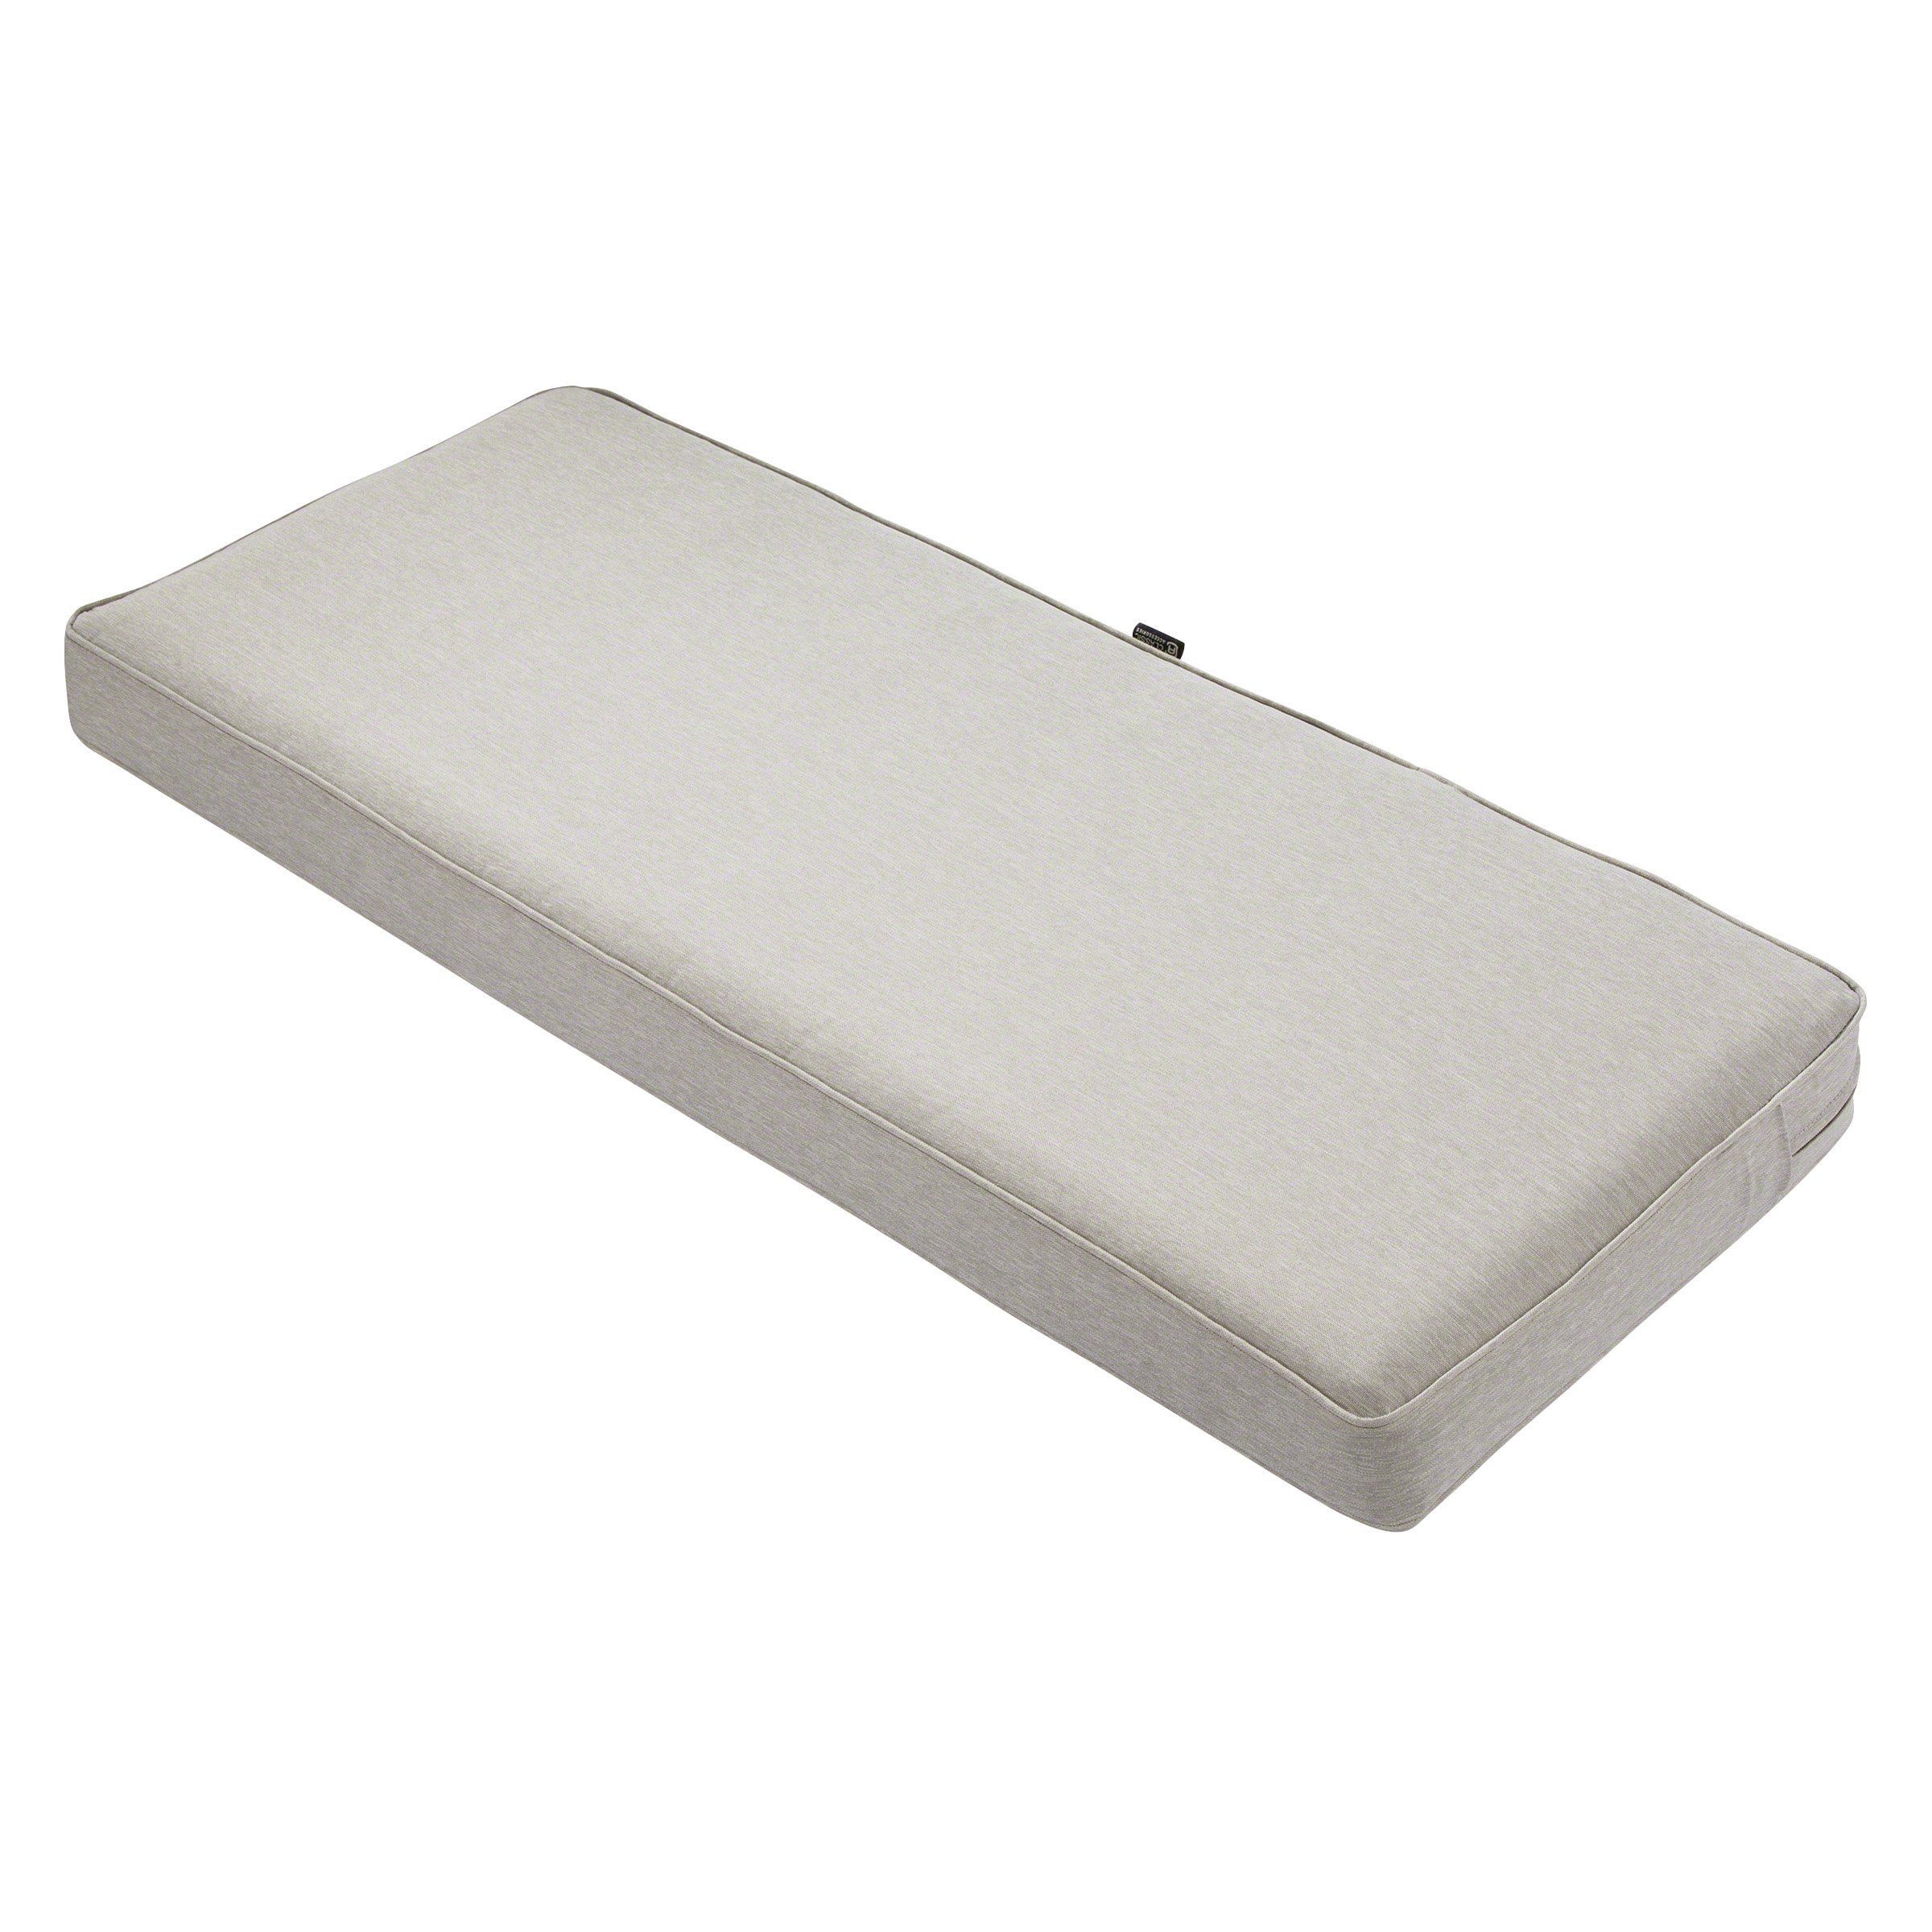 Classic Accessories Montlake Bench Cushion Foam & Slip Cover, Heather Grey, 48x18x3 Thick